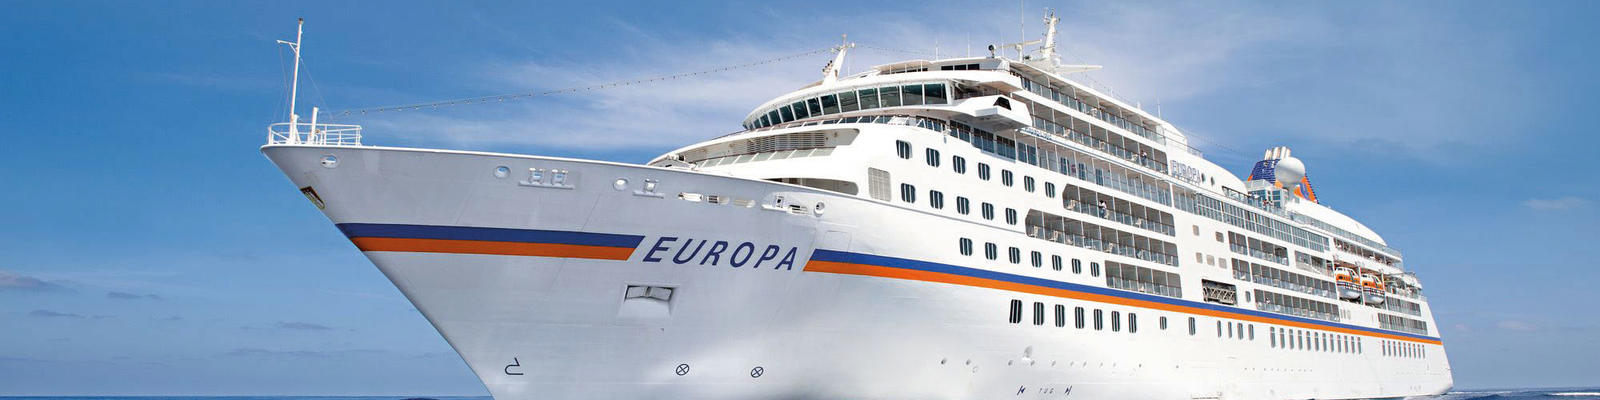 Hapag Lloyd Europa Cruise Ship Review Photos Amp Departure Ports On Cruise Critic